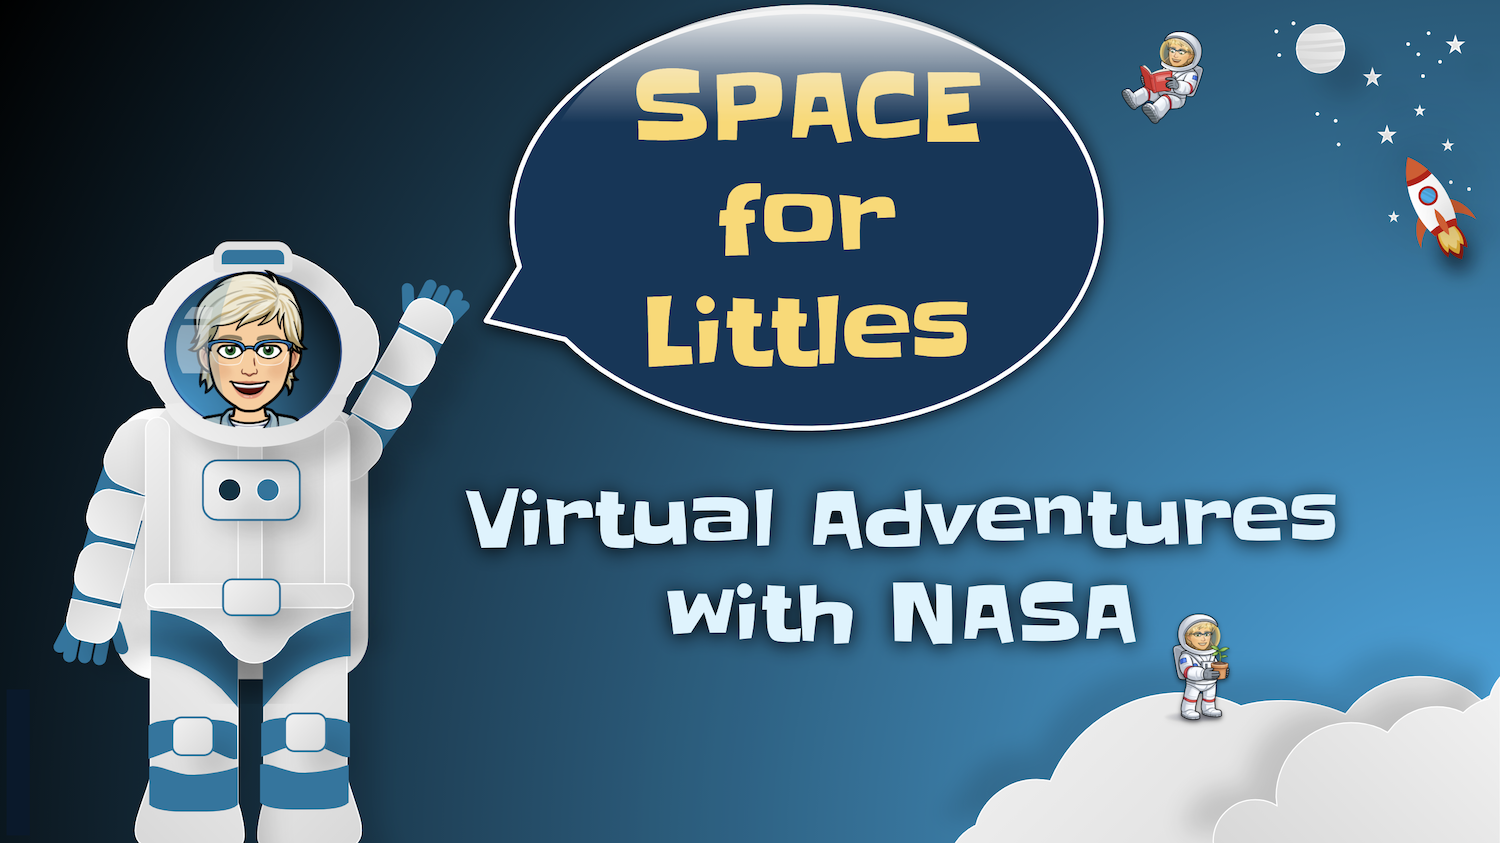 Space for Littles